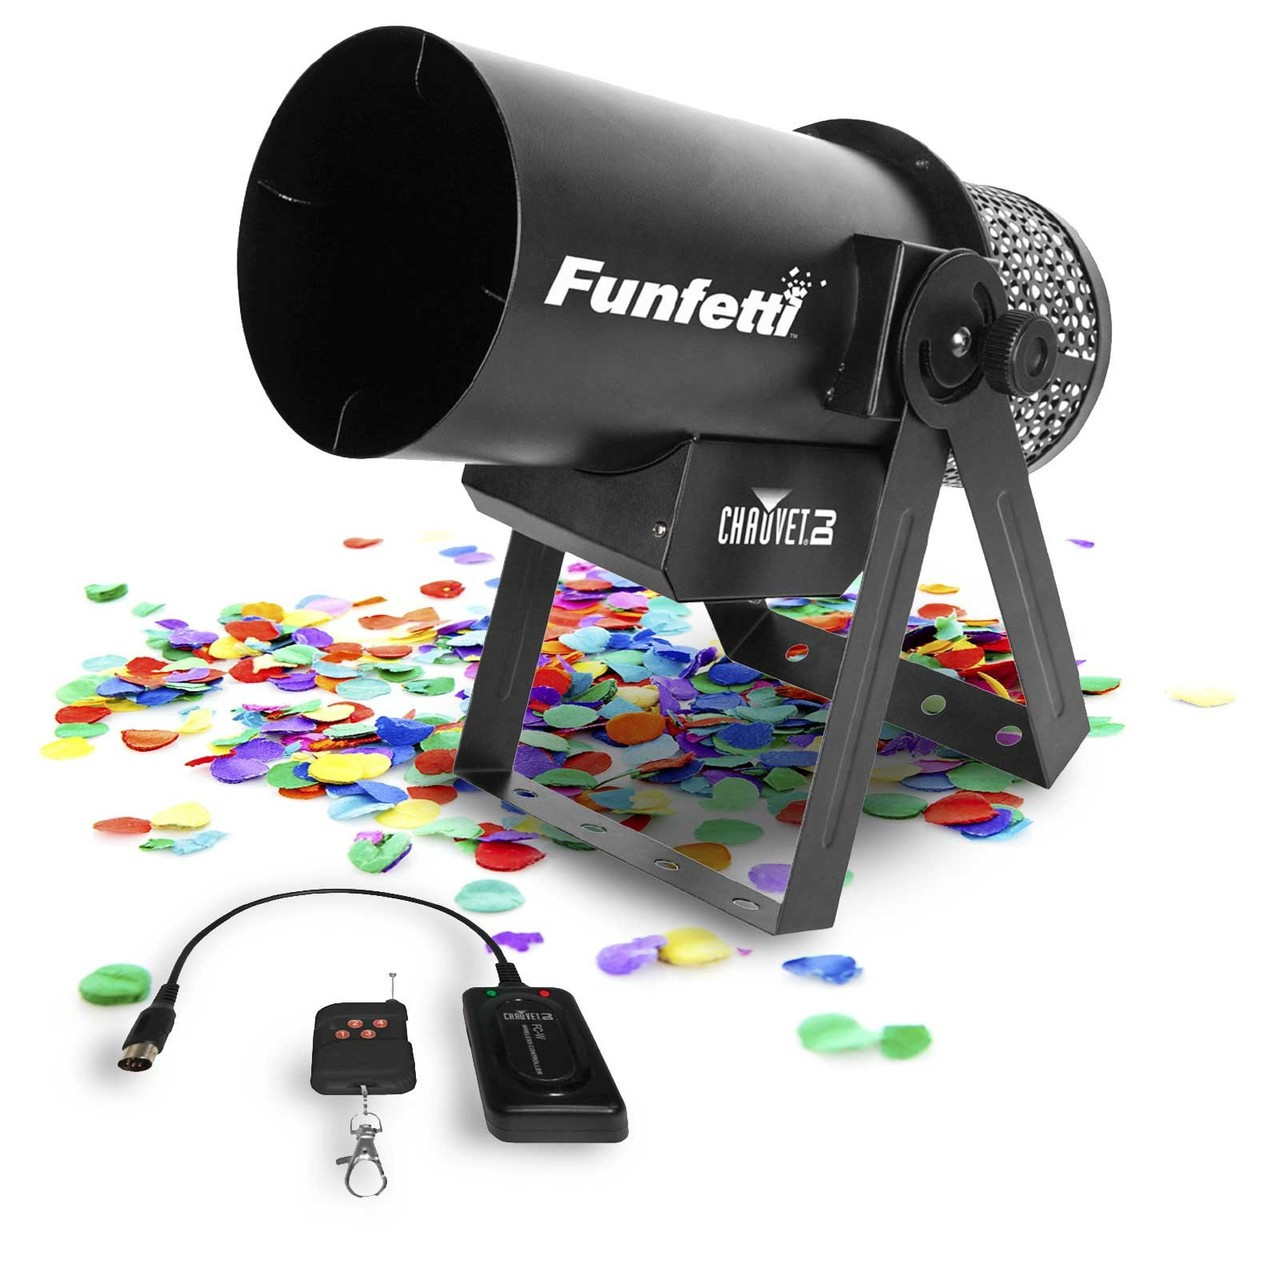 Confetti, Blower, Laucher, machine, Funfetti, Chauvet, DJ, Nightclub